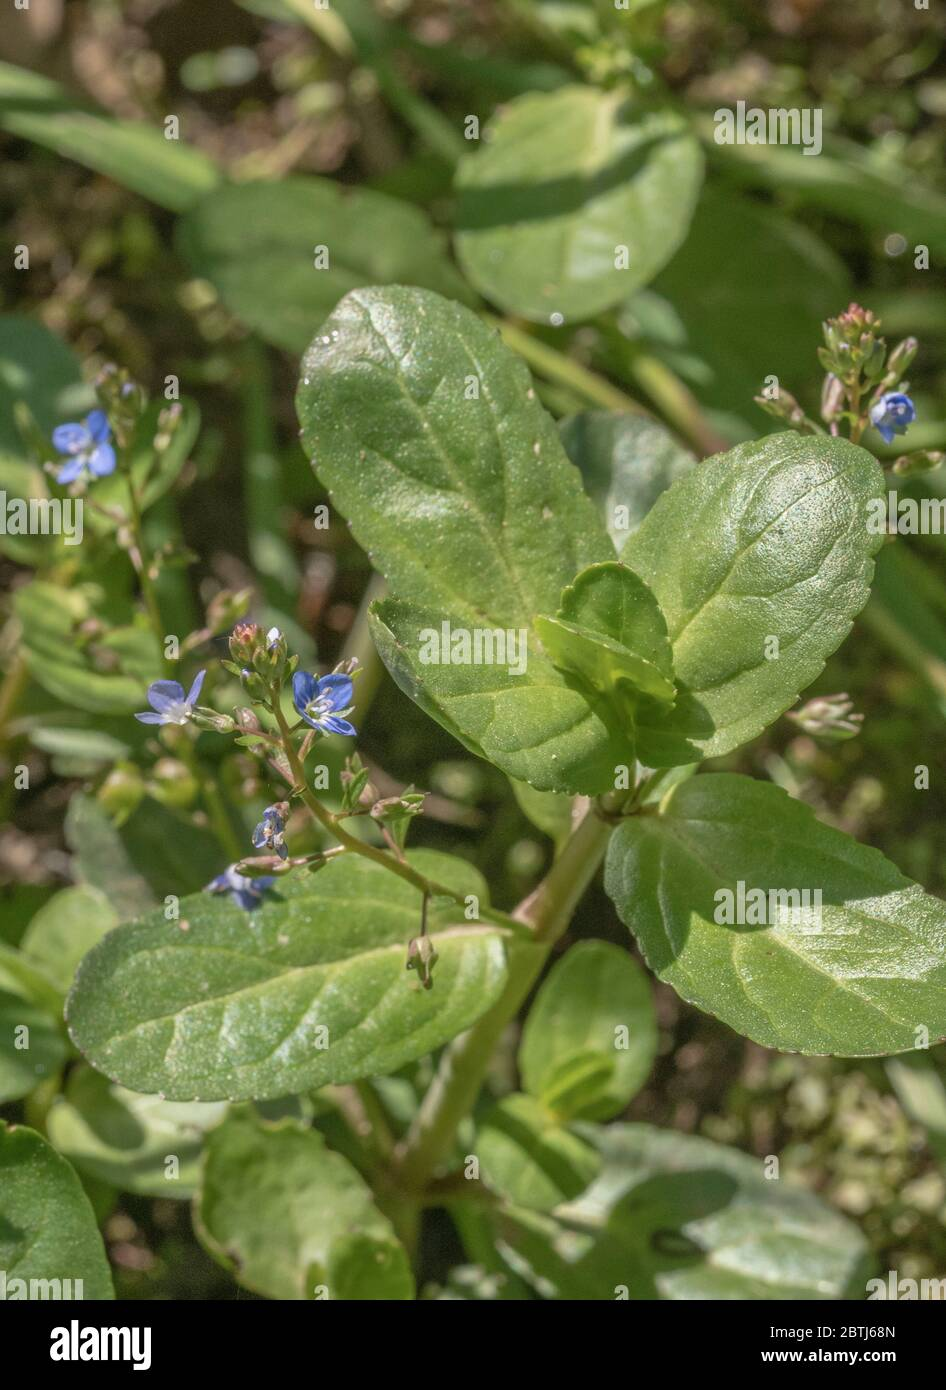 Dainty blue flowers of Brooklime / Veronica beccabunga growing in drainage ditch. A foraged & survival food containing Vitamin C. Once used in cures Stock Photo